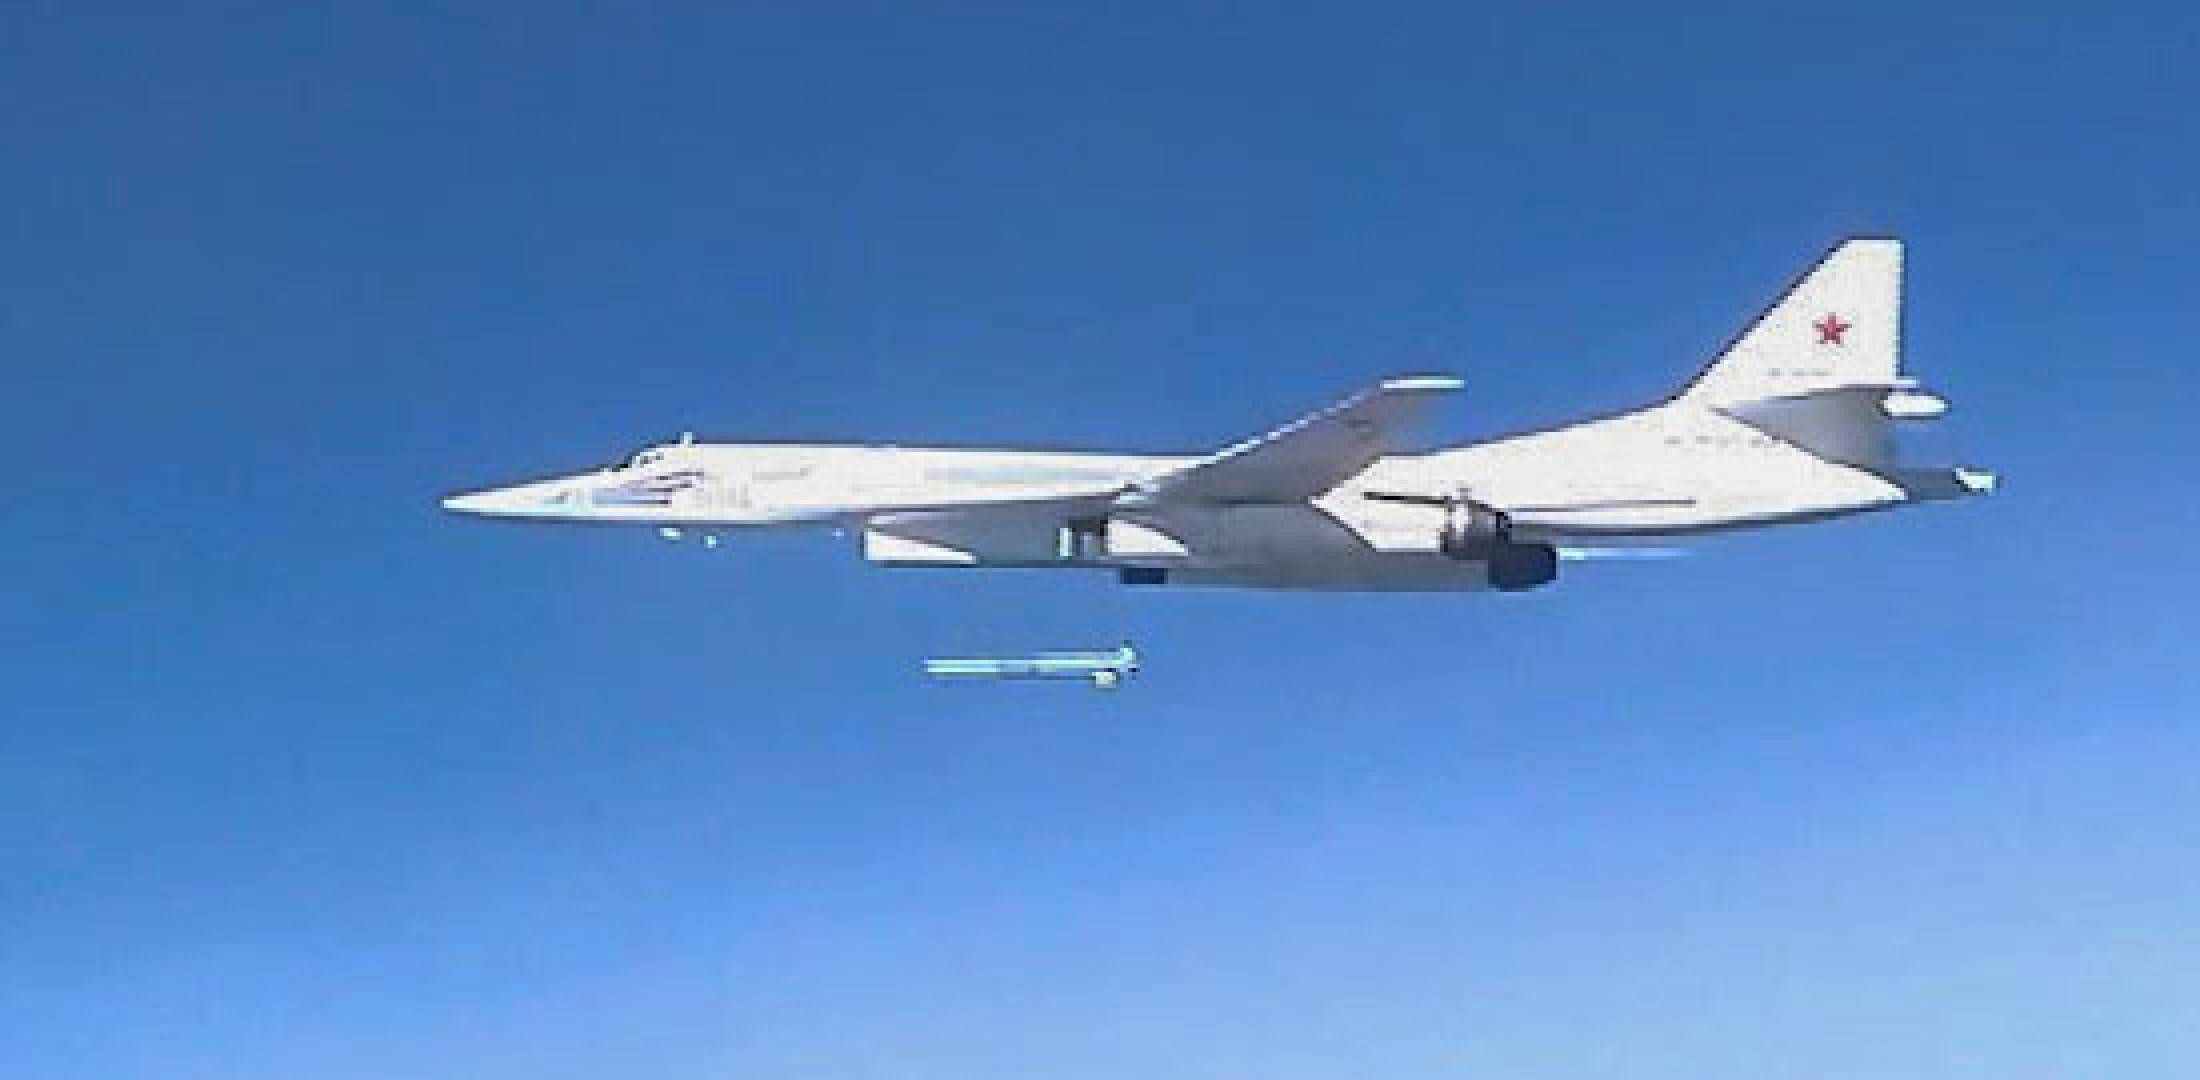 Latest Russian Strikes On Syria Employ New Cruise Missile